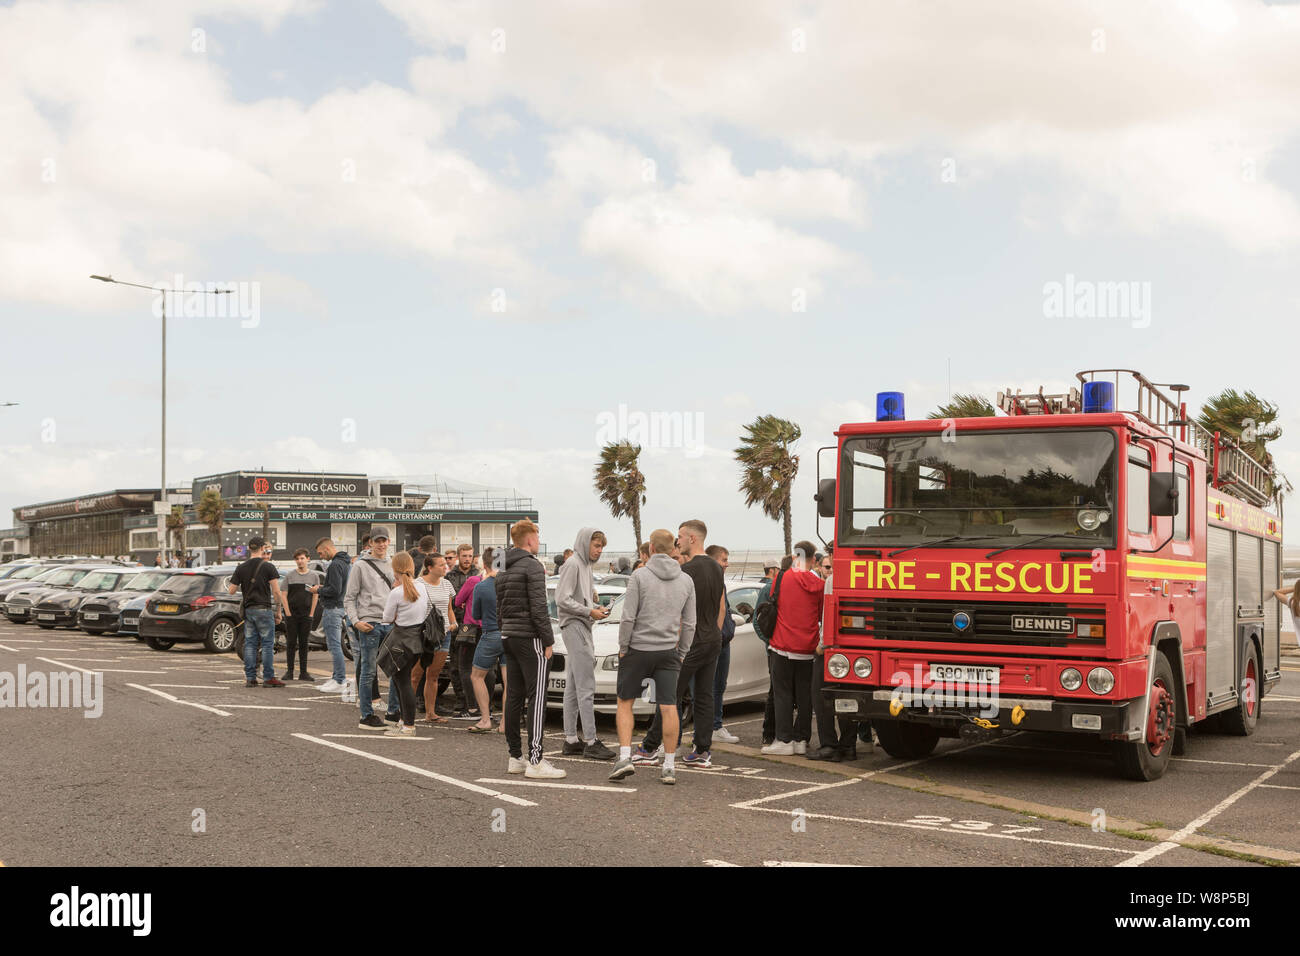 Southend on Sea, UK. 10th Aug, 2019. Friends and family of Cian Daly, one of five people who passed away at the end of July in suspected drugs-related deaths in South Essex, meet for a memorial ride on Southend seafront before heading to Leigh on Sea for a balloon release. Penelope Barritt/Alamy Live News Stock Photo